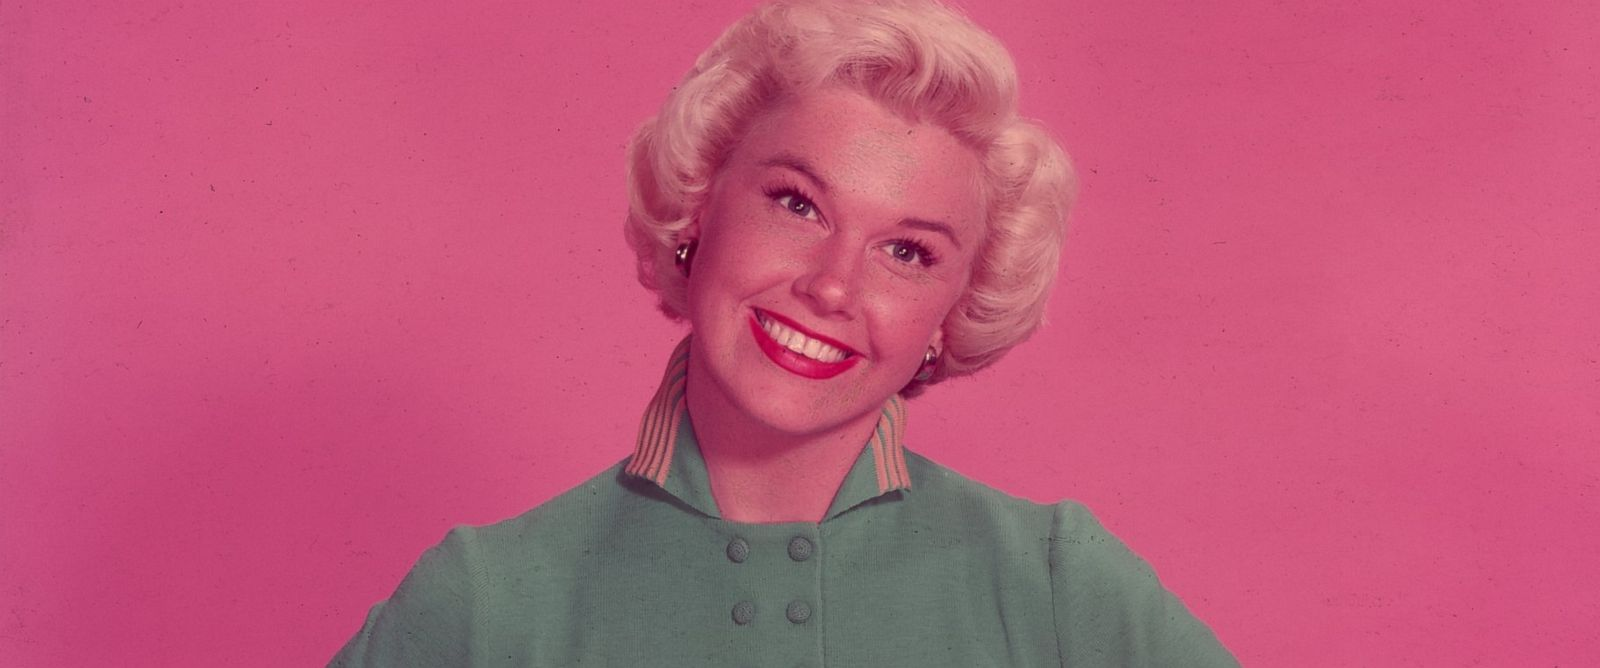 PHOTO: In this file photo, Doris Day is pictured circa 1945.